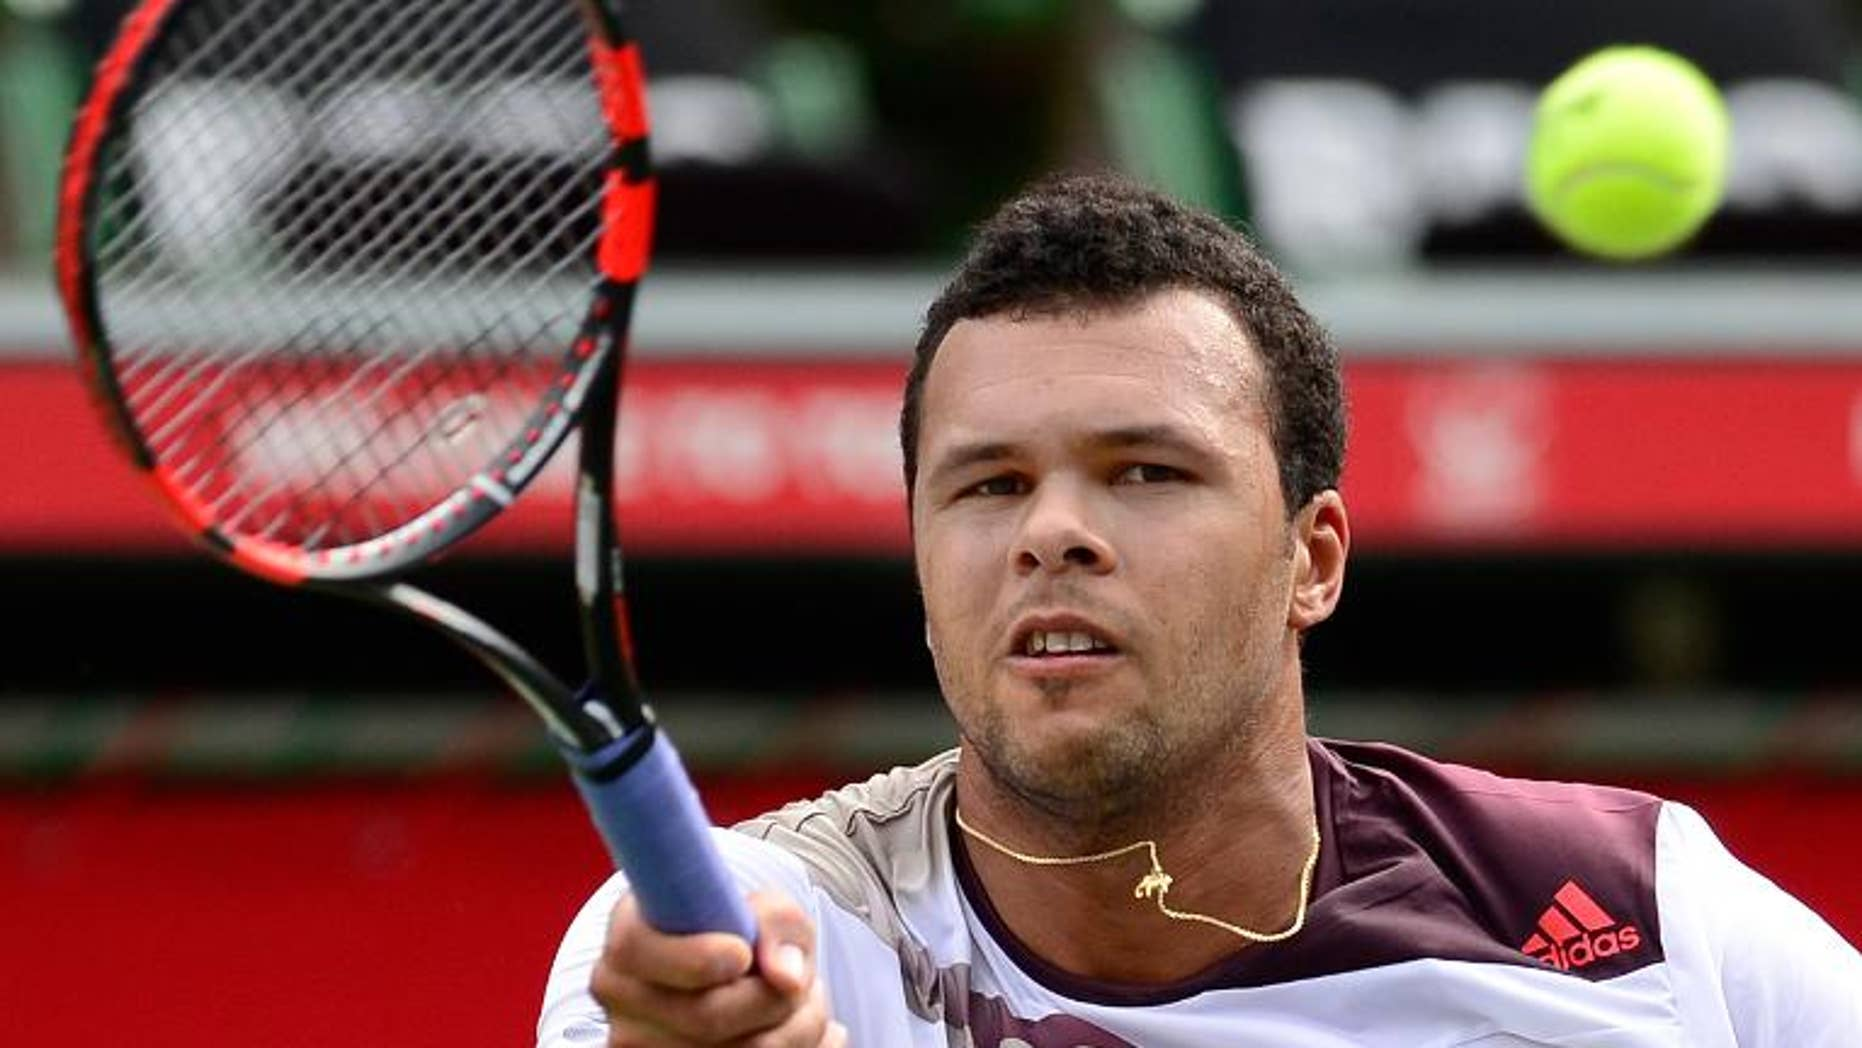 France's Jo-Wilfried Tsonga hits a return against his compatriot Gael Monfils during their first round match Japan Open first round in Tokyo on September 30, 2013. Tsonga defeated Monfils 6-3, 7-6 (10/8).